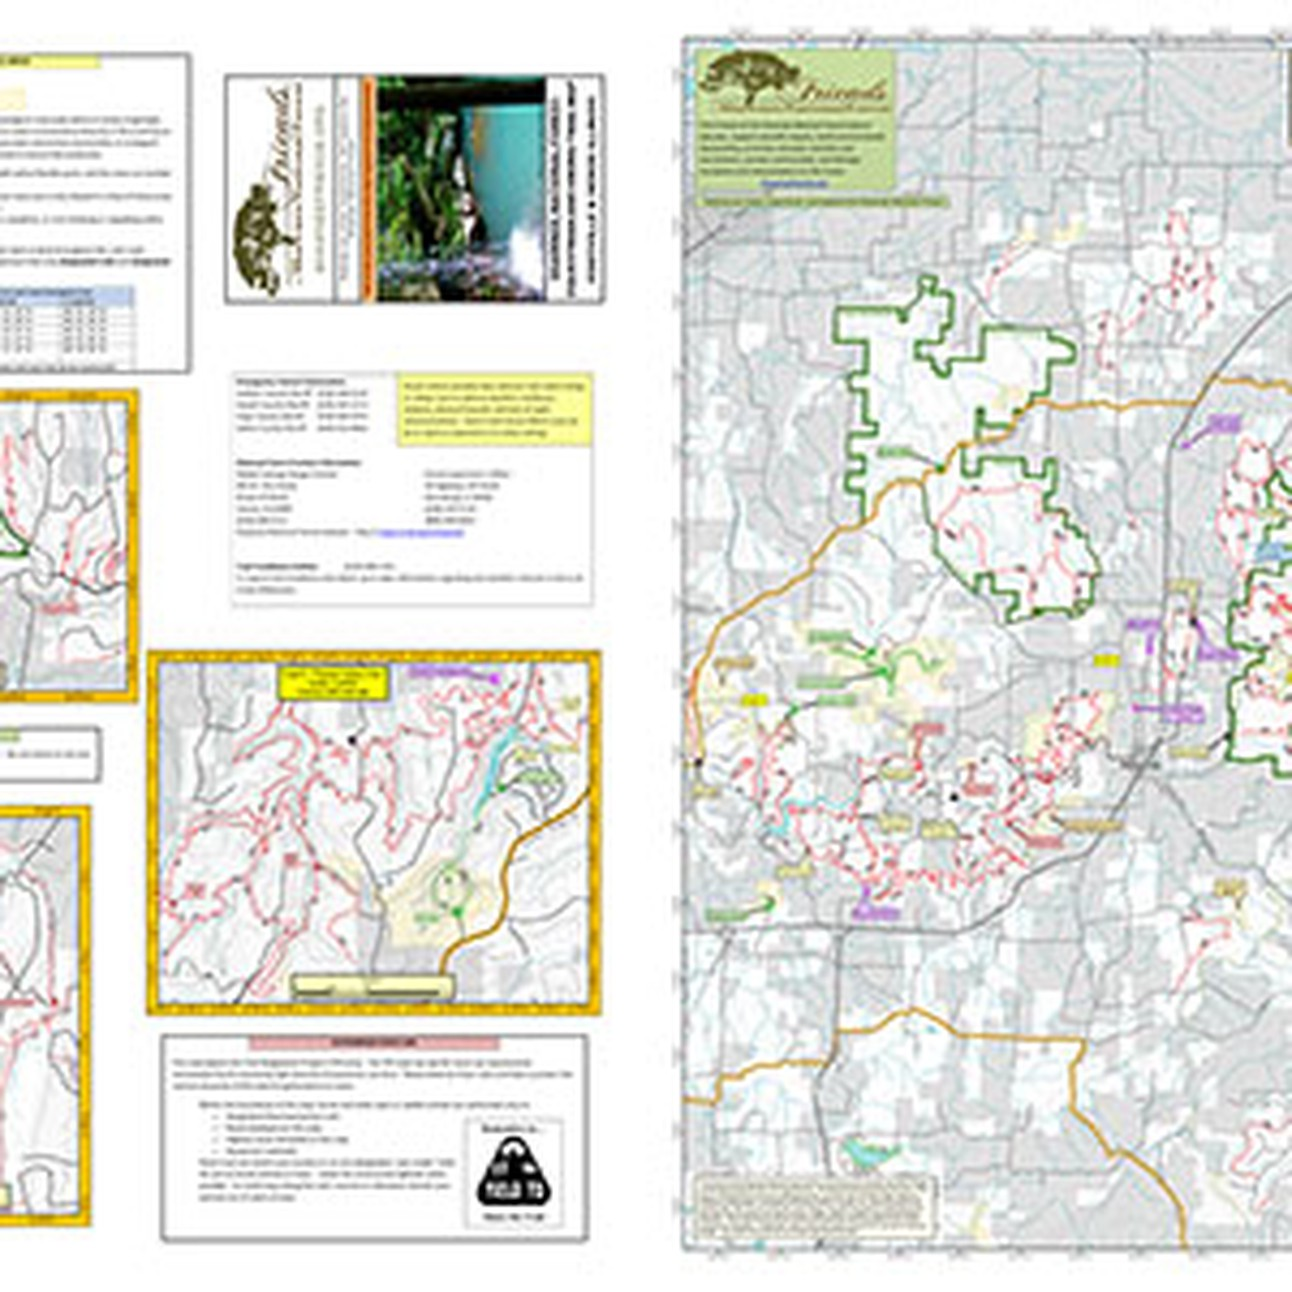 East Side-Shawnee National Forest Trail Map on shinnecock indian nation map, santa fe map, lochbuie map, northwest oklahoma city map, inola map, raytown map, alabama-coushatta tribe of texas map, ohio national map, bennettsville map, northwest indian war map, alcova map, town of wheatfield map, cedartown map, boston map, charleston map, winnebago tribe of nebraska map, idabel ok map, eastern band of cherokee indians map, medicine lodge map, coushatta tribe of louisiana map,